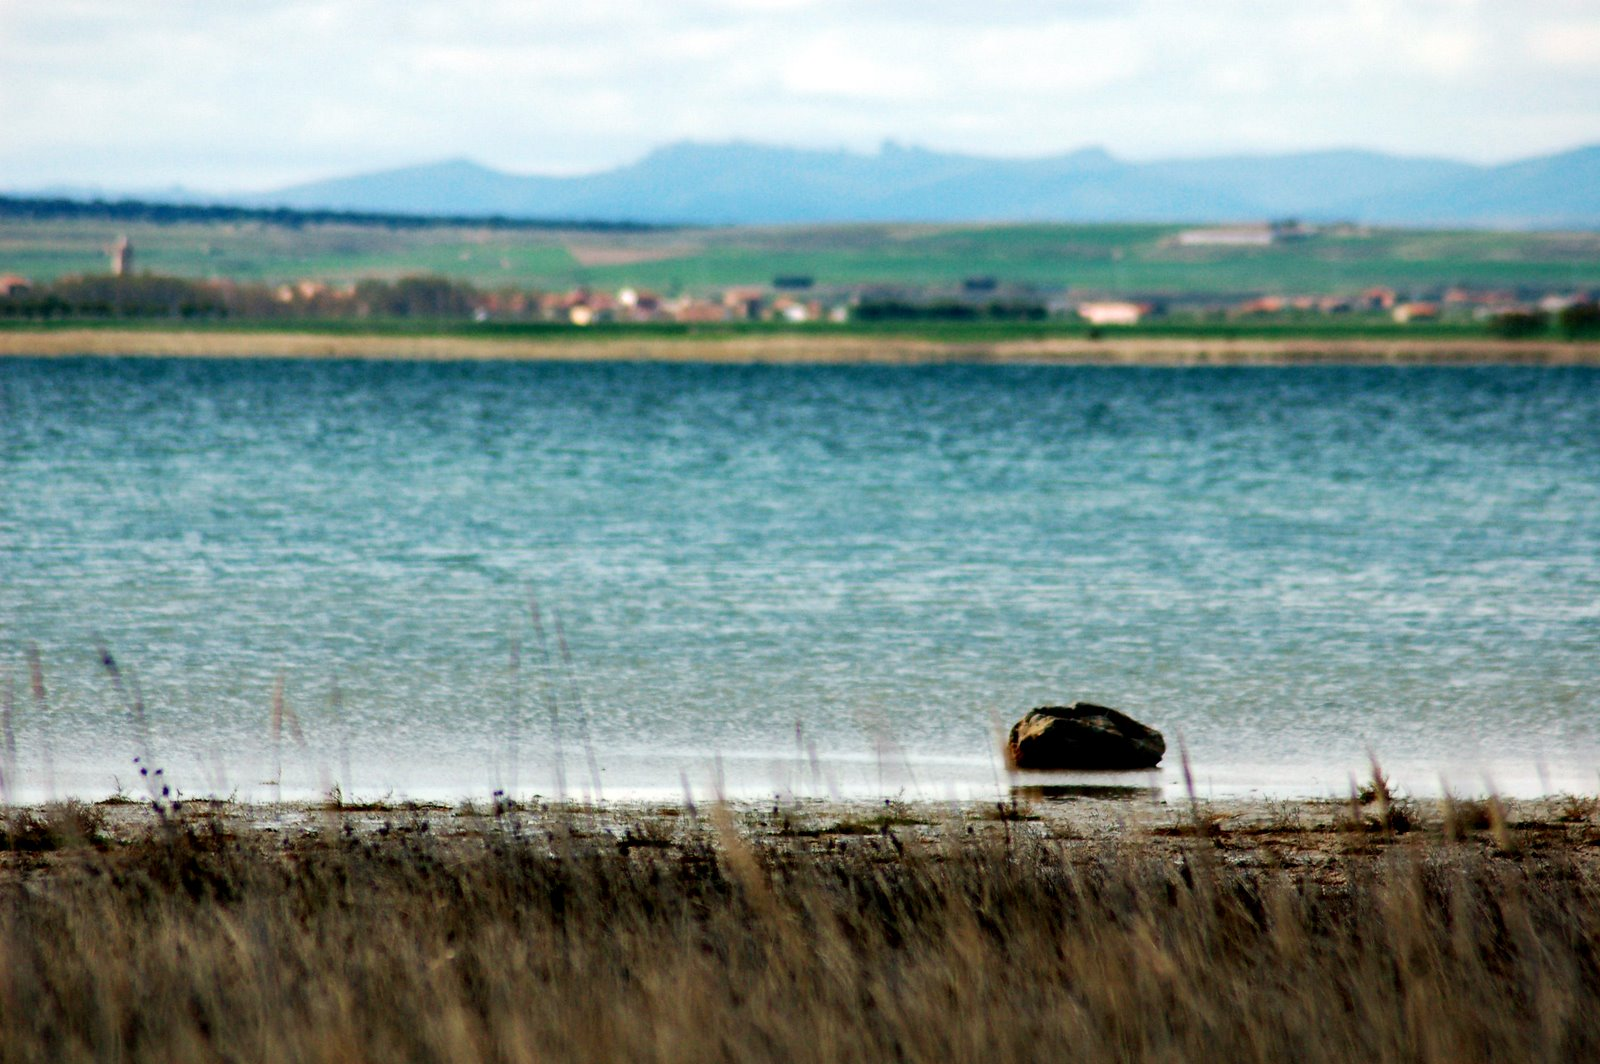 File:Laguna de Gallocanta.jpg - Wikimedia Commons